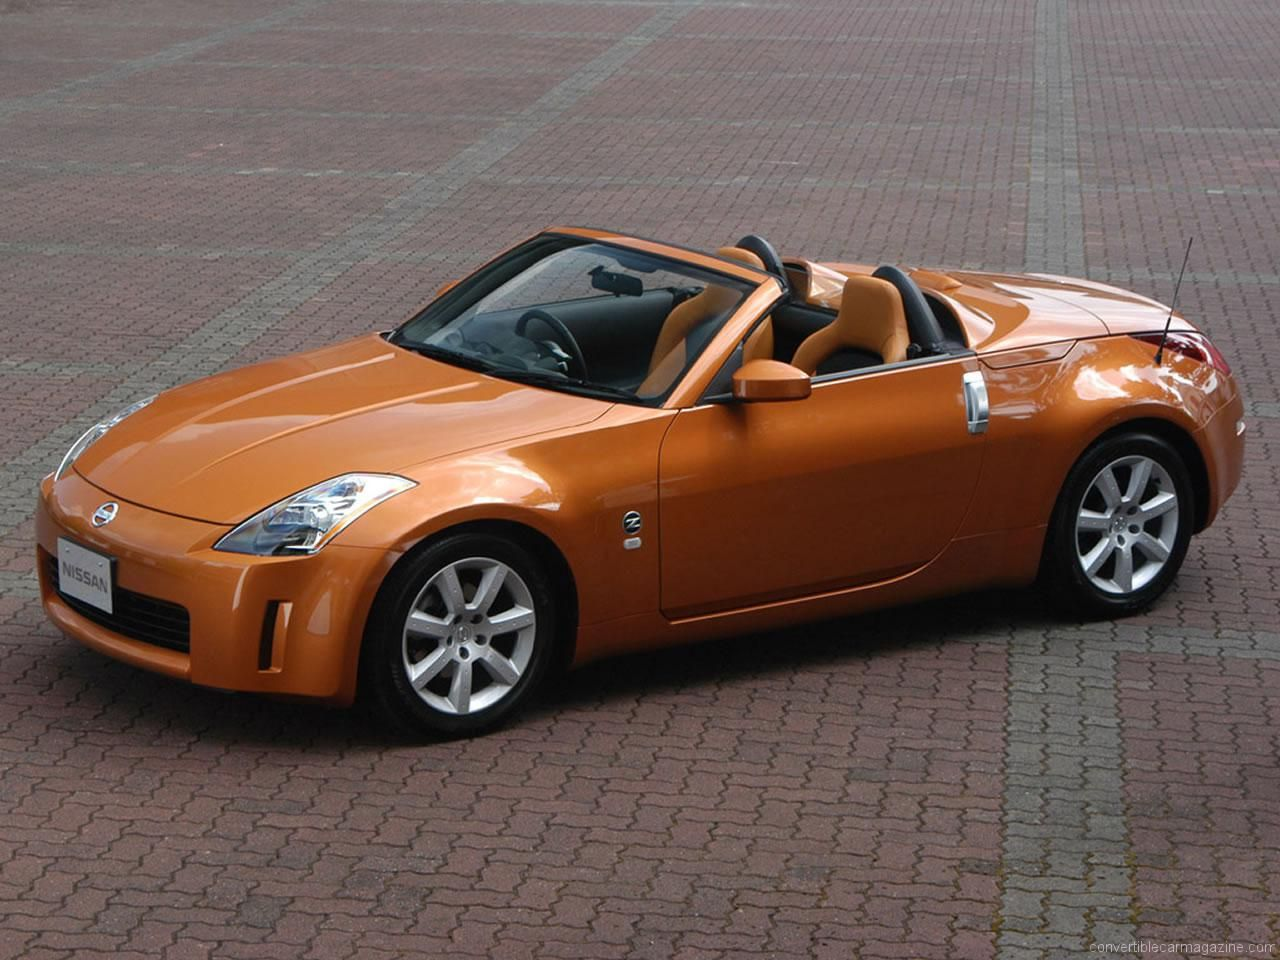 Very nice nissan roadster i love the open top and i adore the color